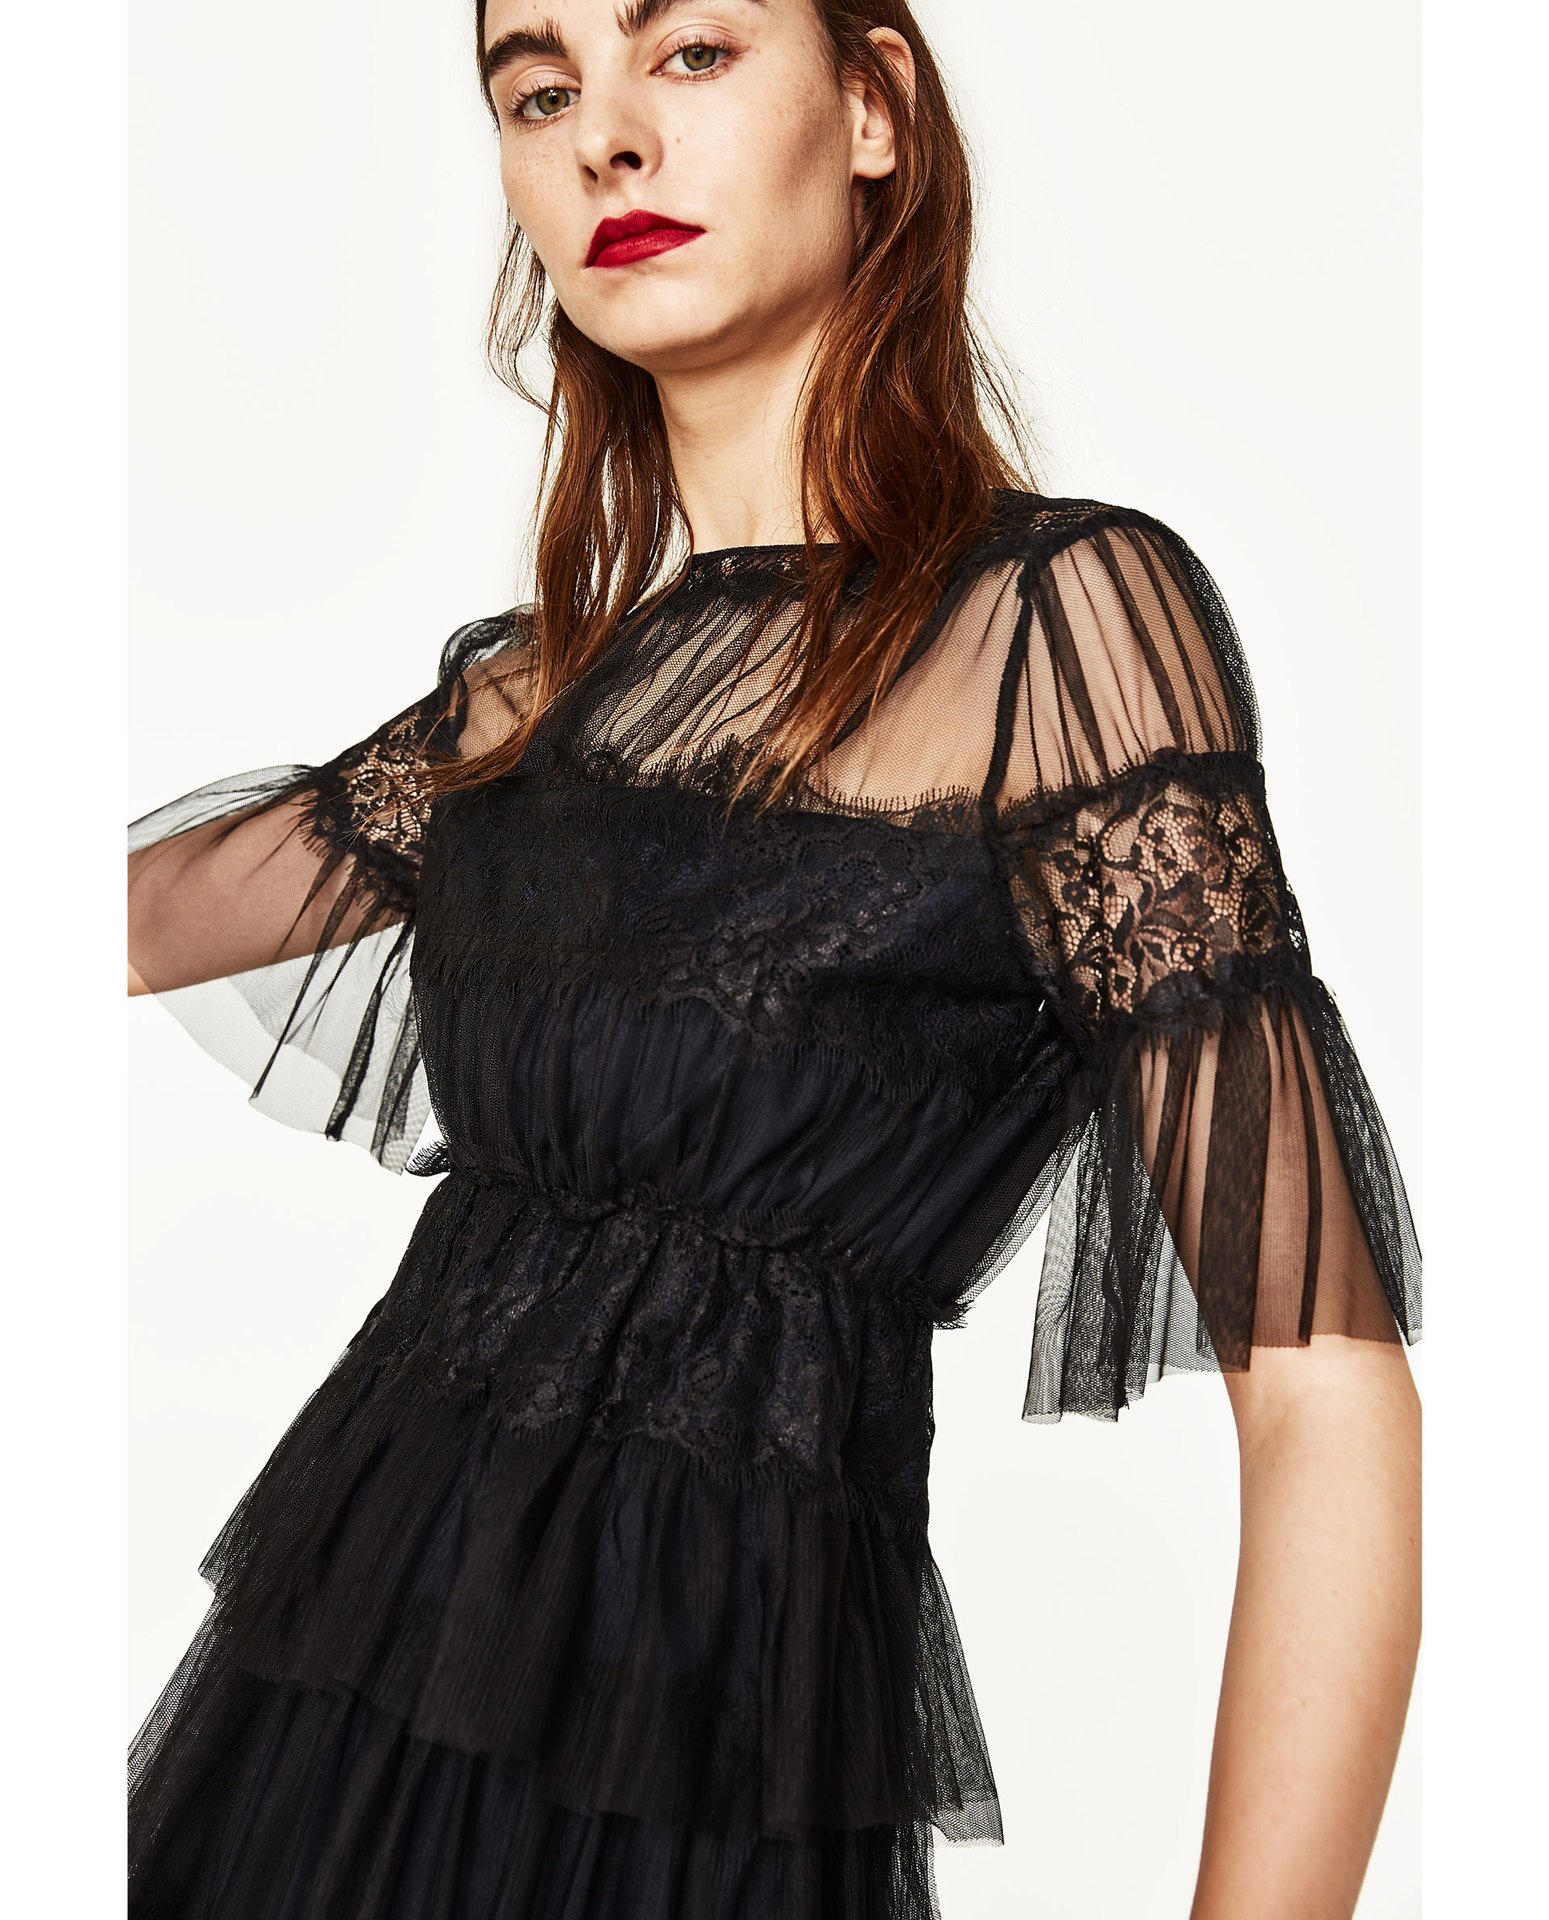 Lace below knee dress  Wisp  Lace Voile Black Mini Dress  Blouse  Pinterest  Mini